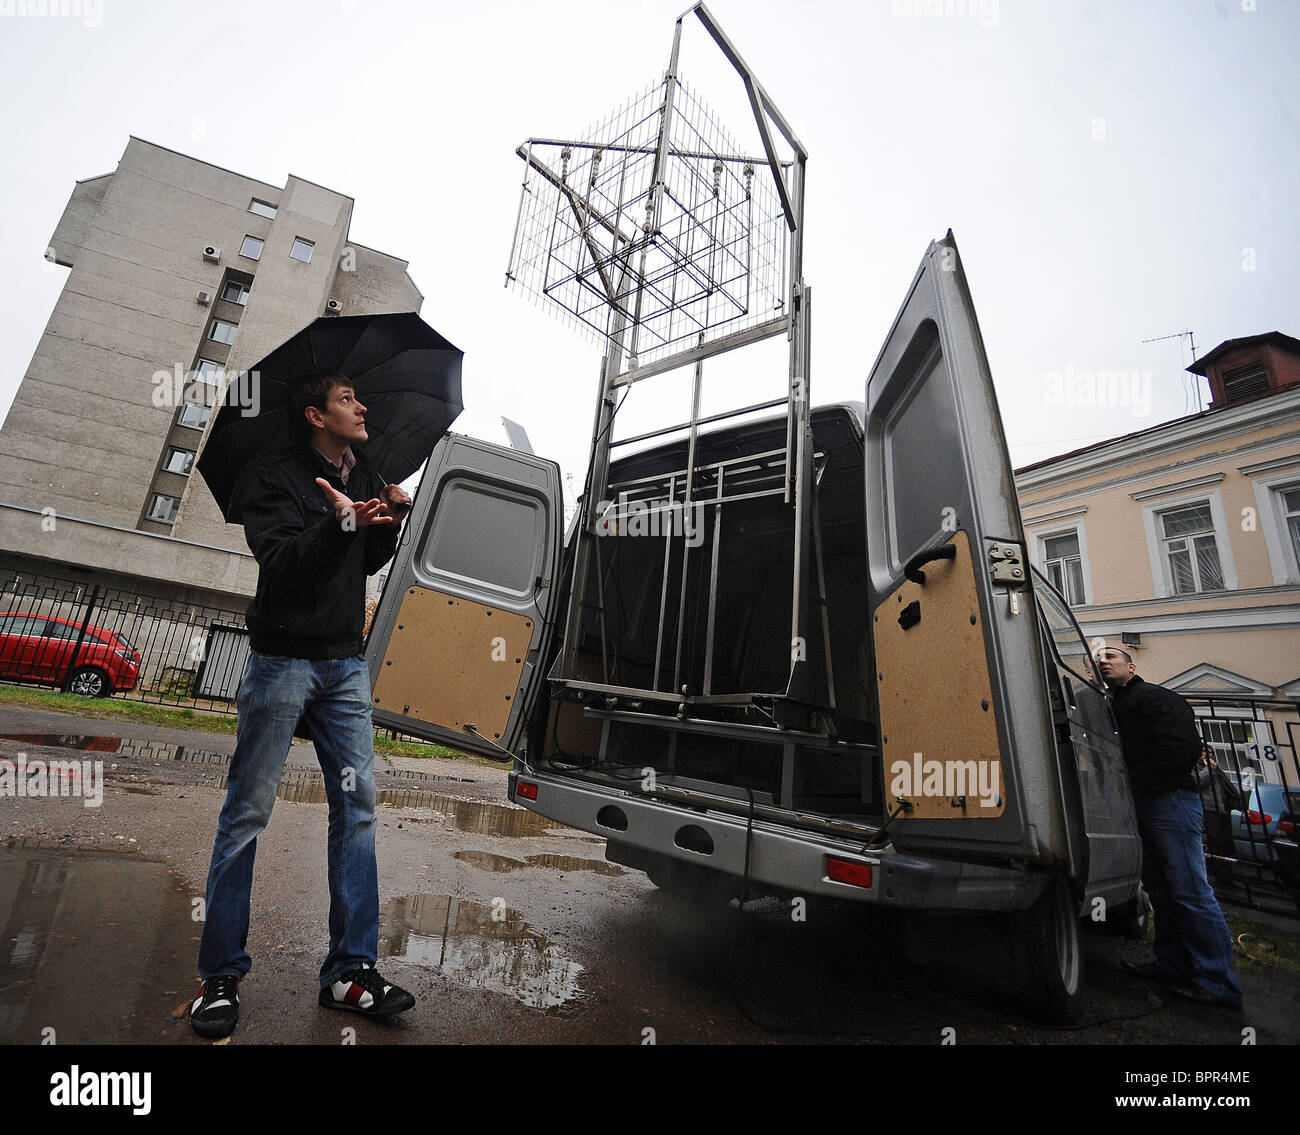 Weather correction experiment carried out in Moscow - Stock Image